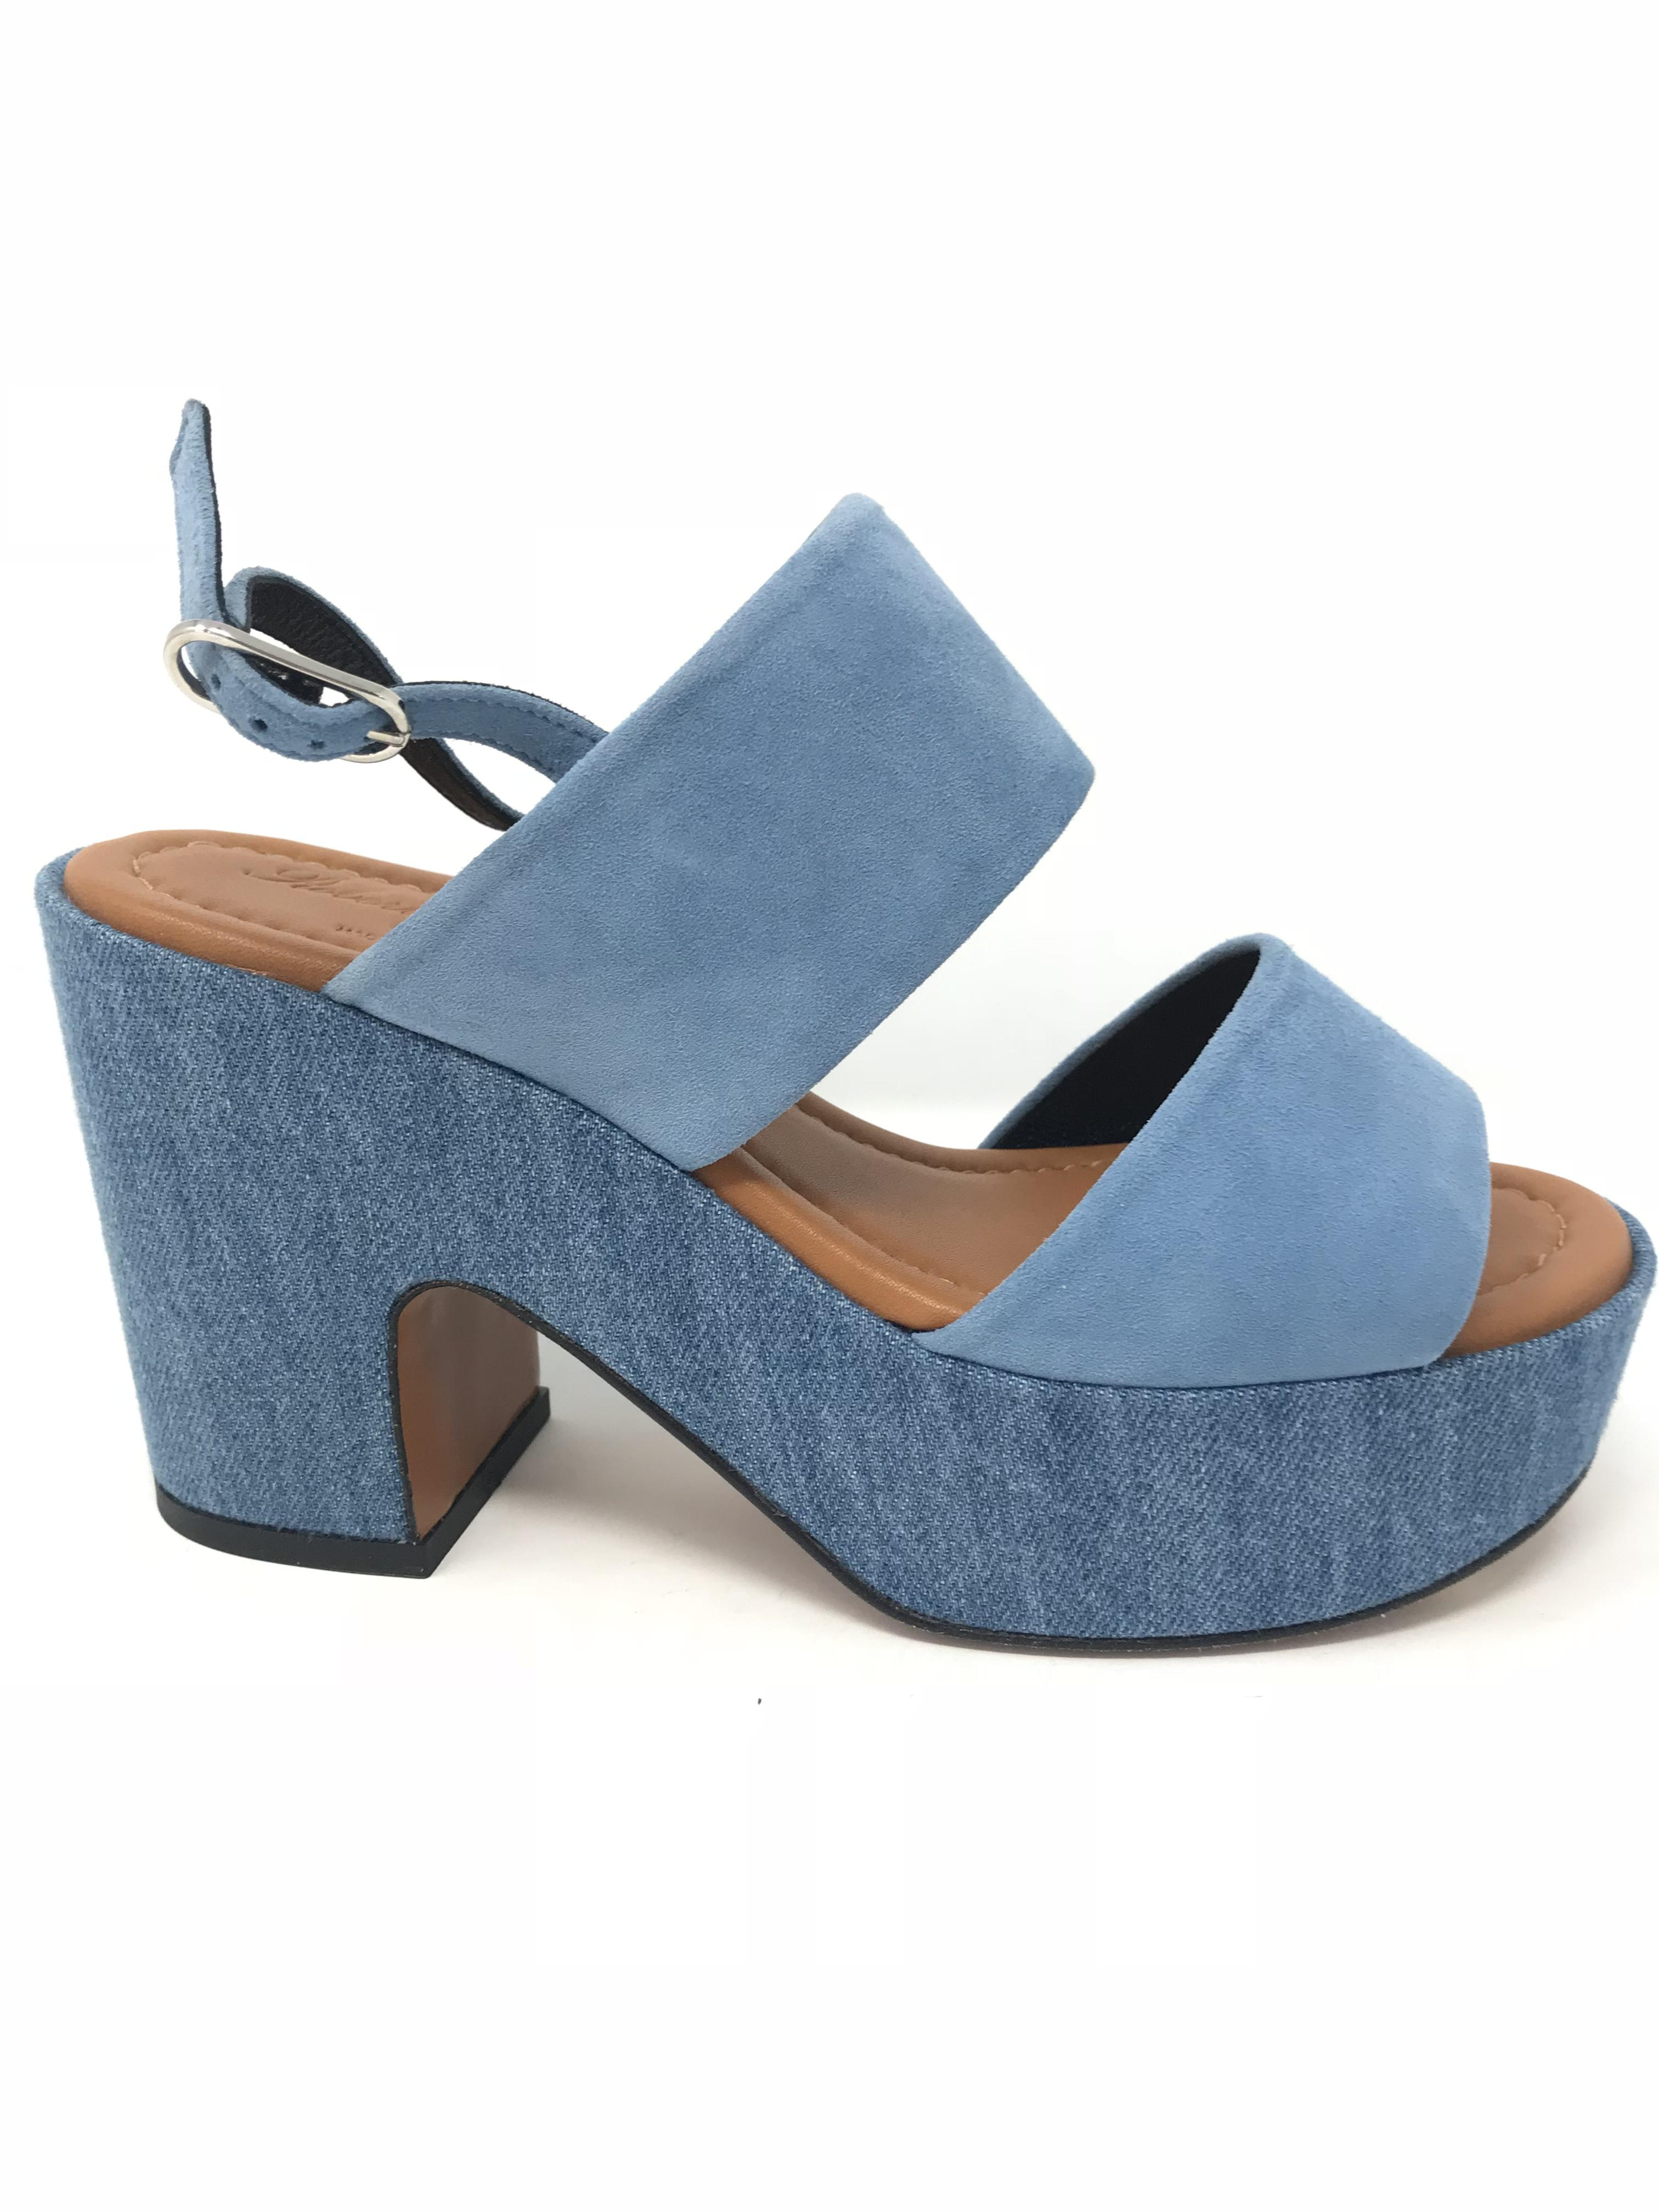 Robert Shoes Price: $267.99